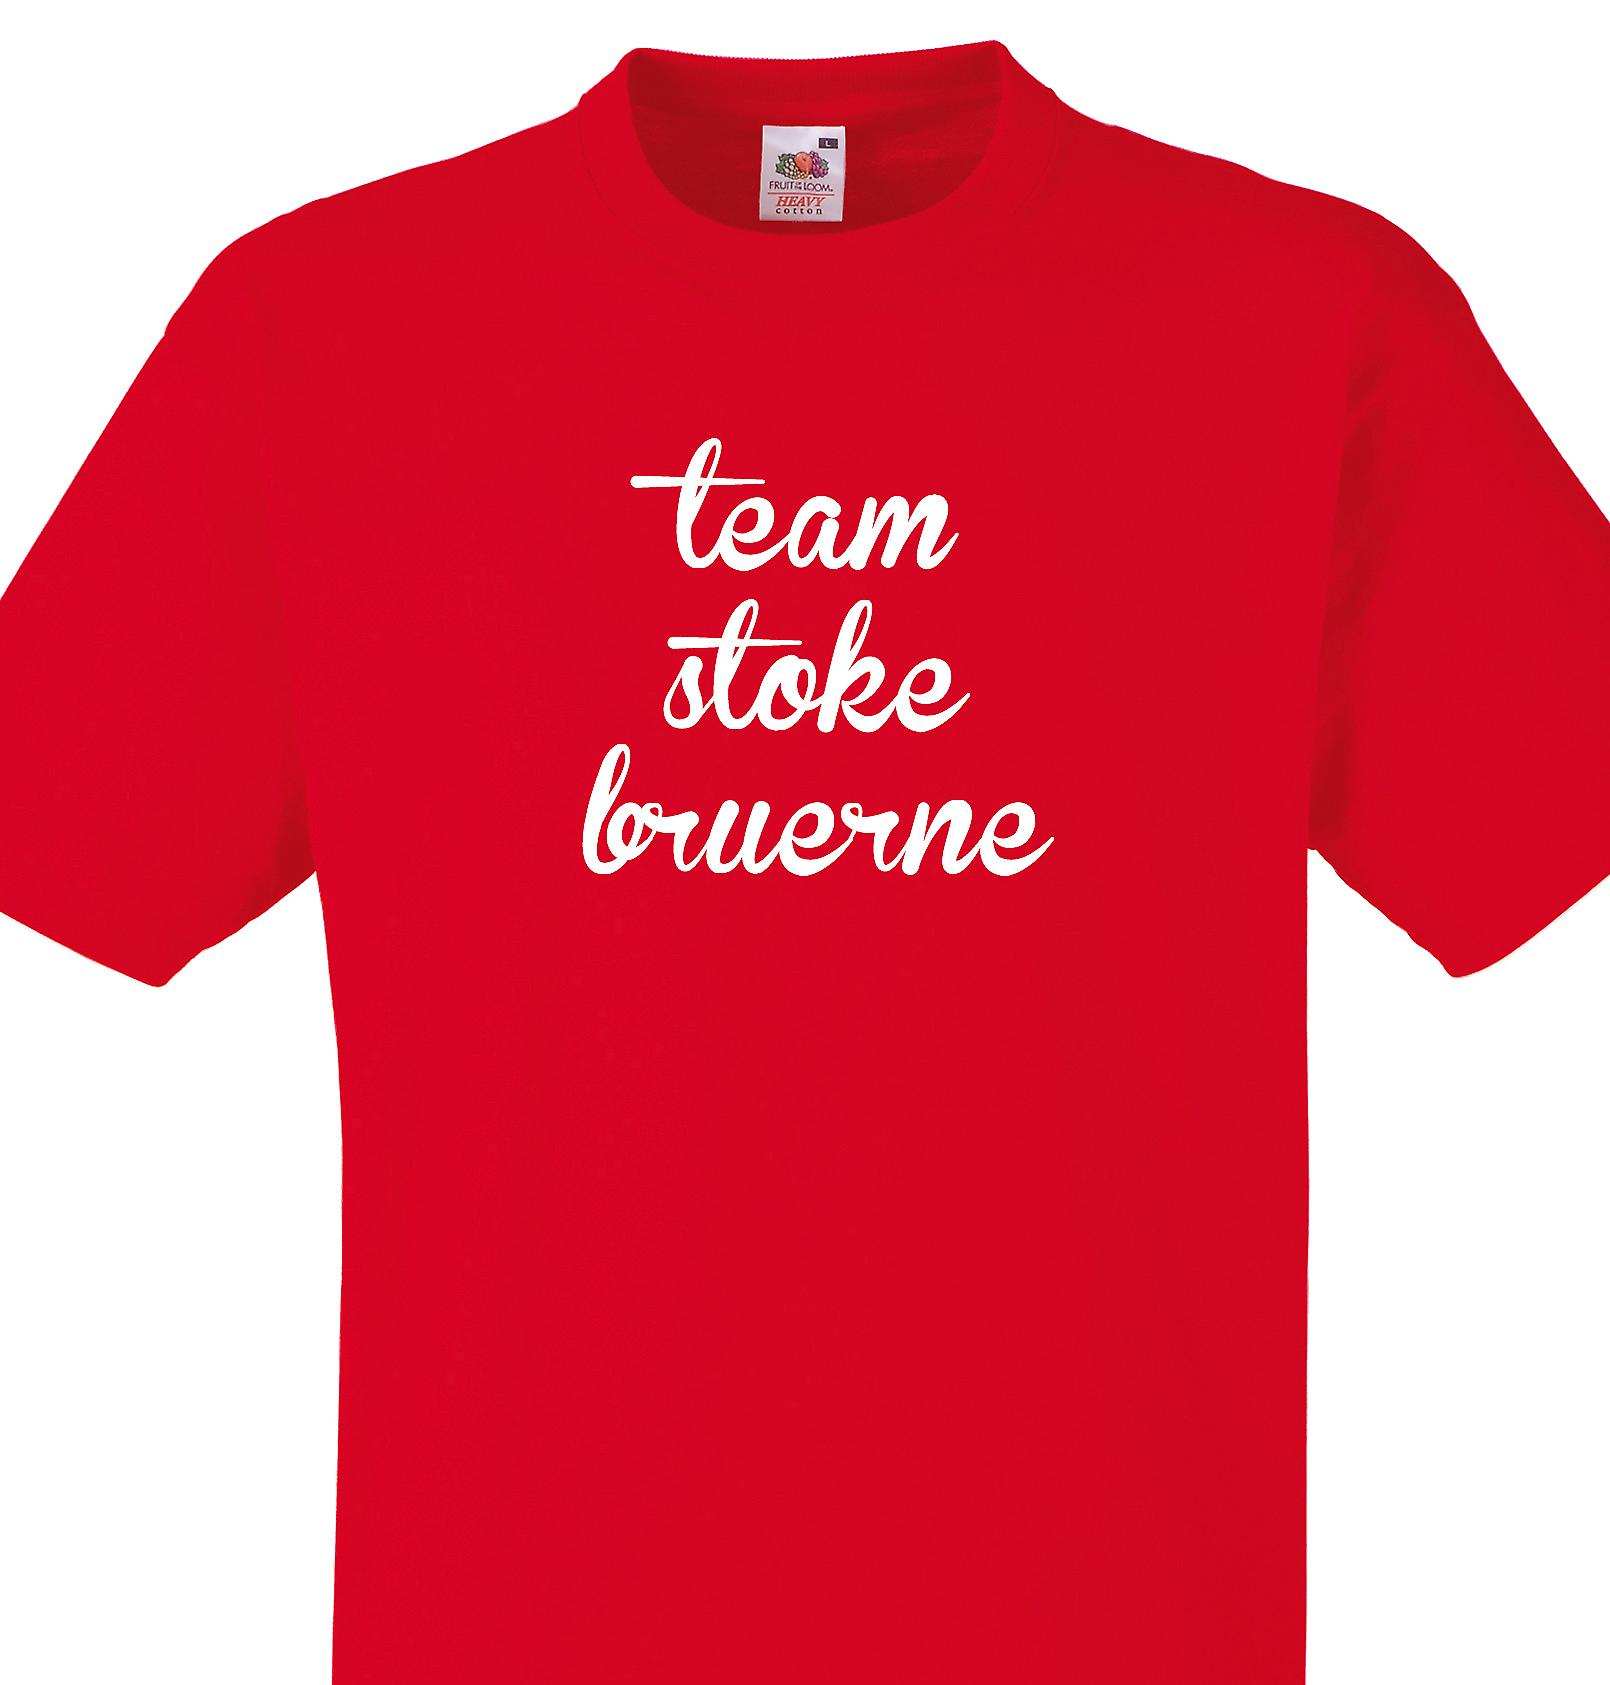 Team Stoke bruerne Red T shirt